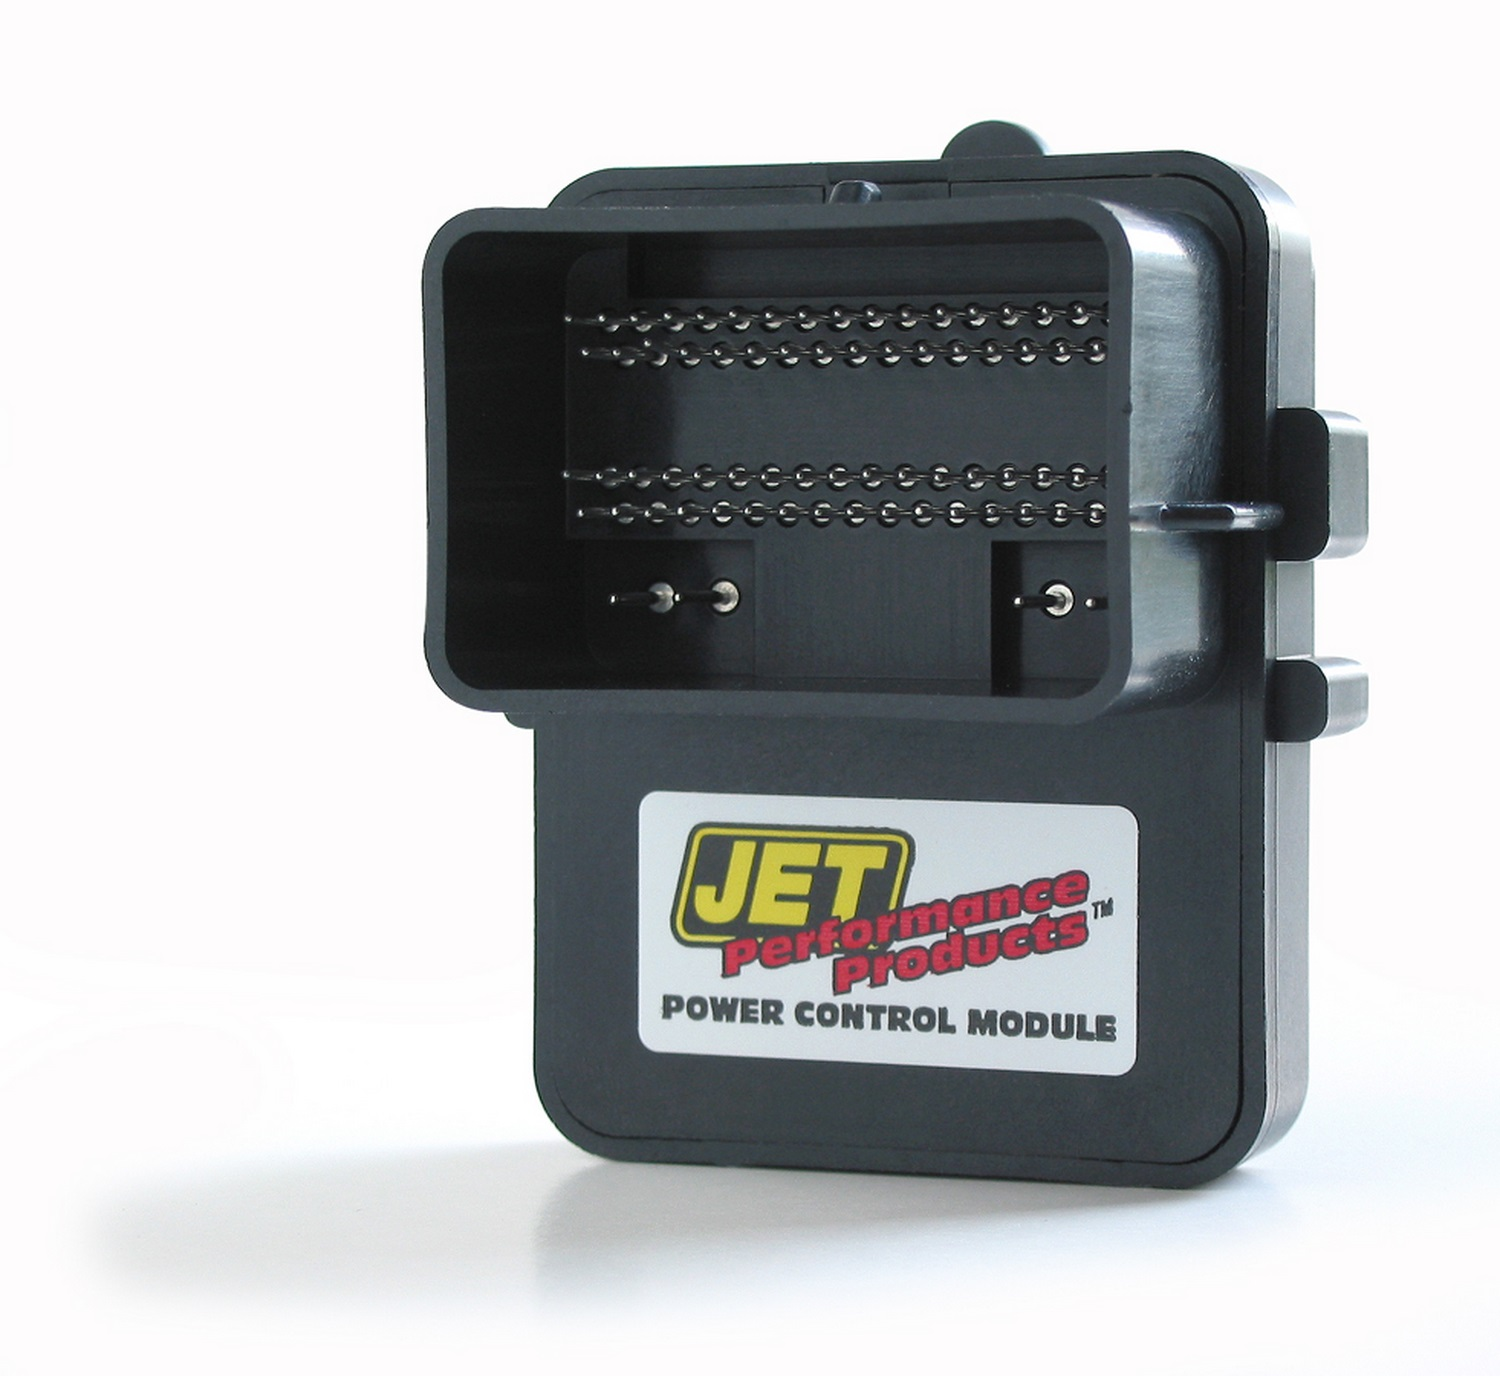 Jet Performance 80217 Jet Performance Module Fits 02 Explorer Mountaineer